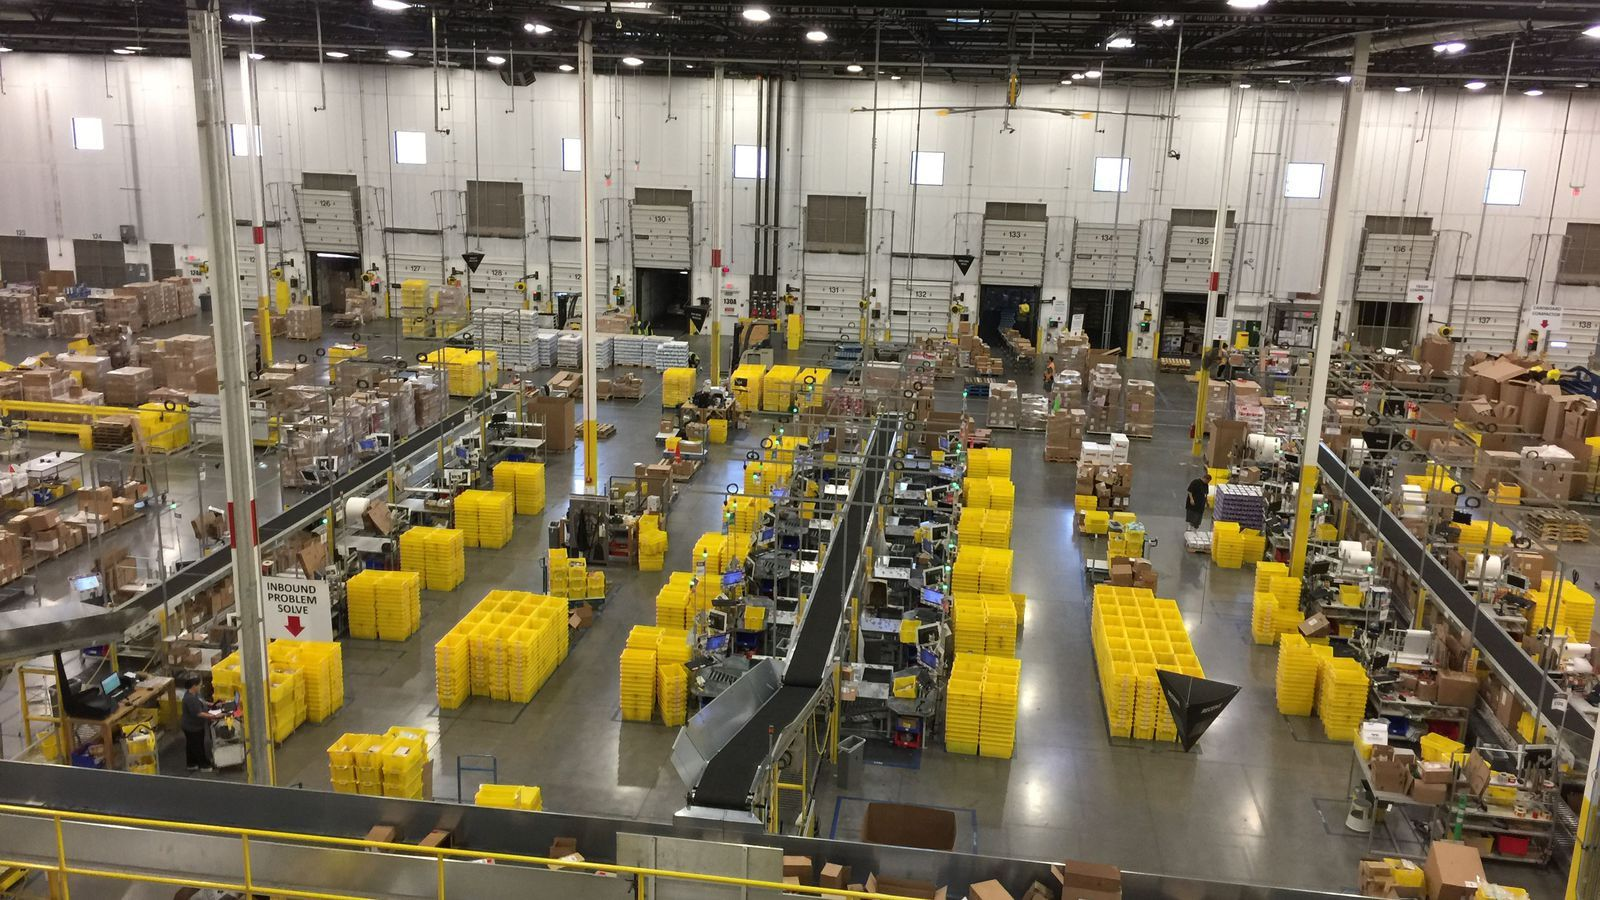 See Inside An Amazon Warehouse In 360 Degrees Warehouse Amazon